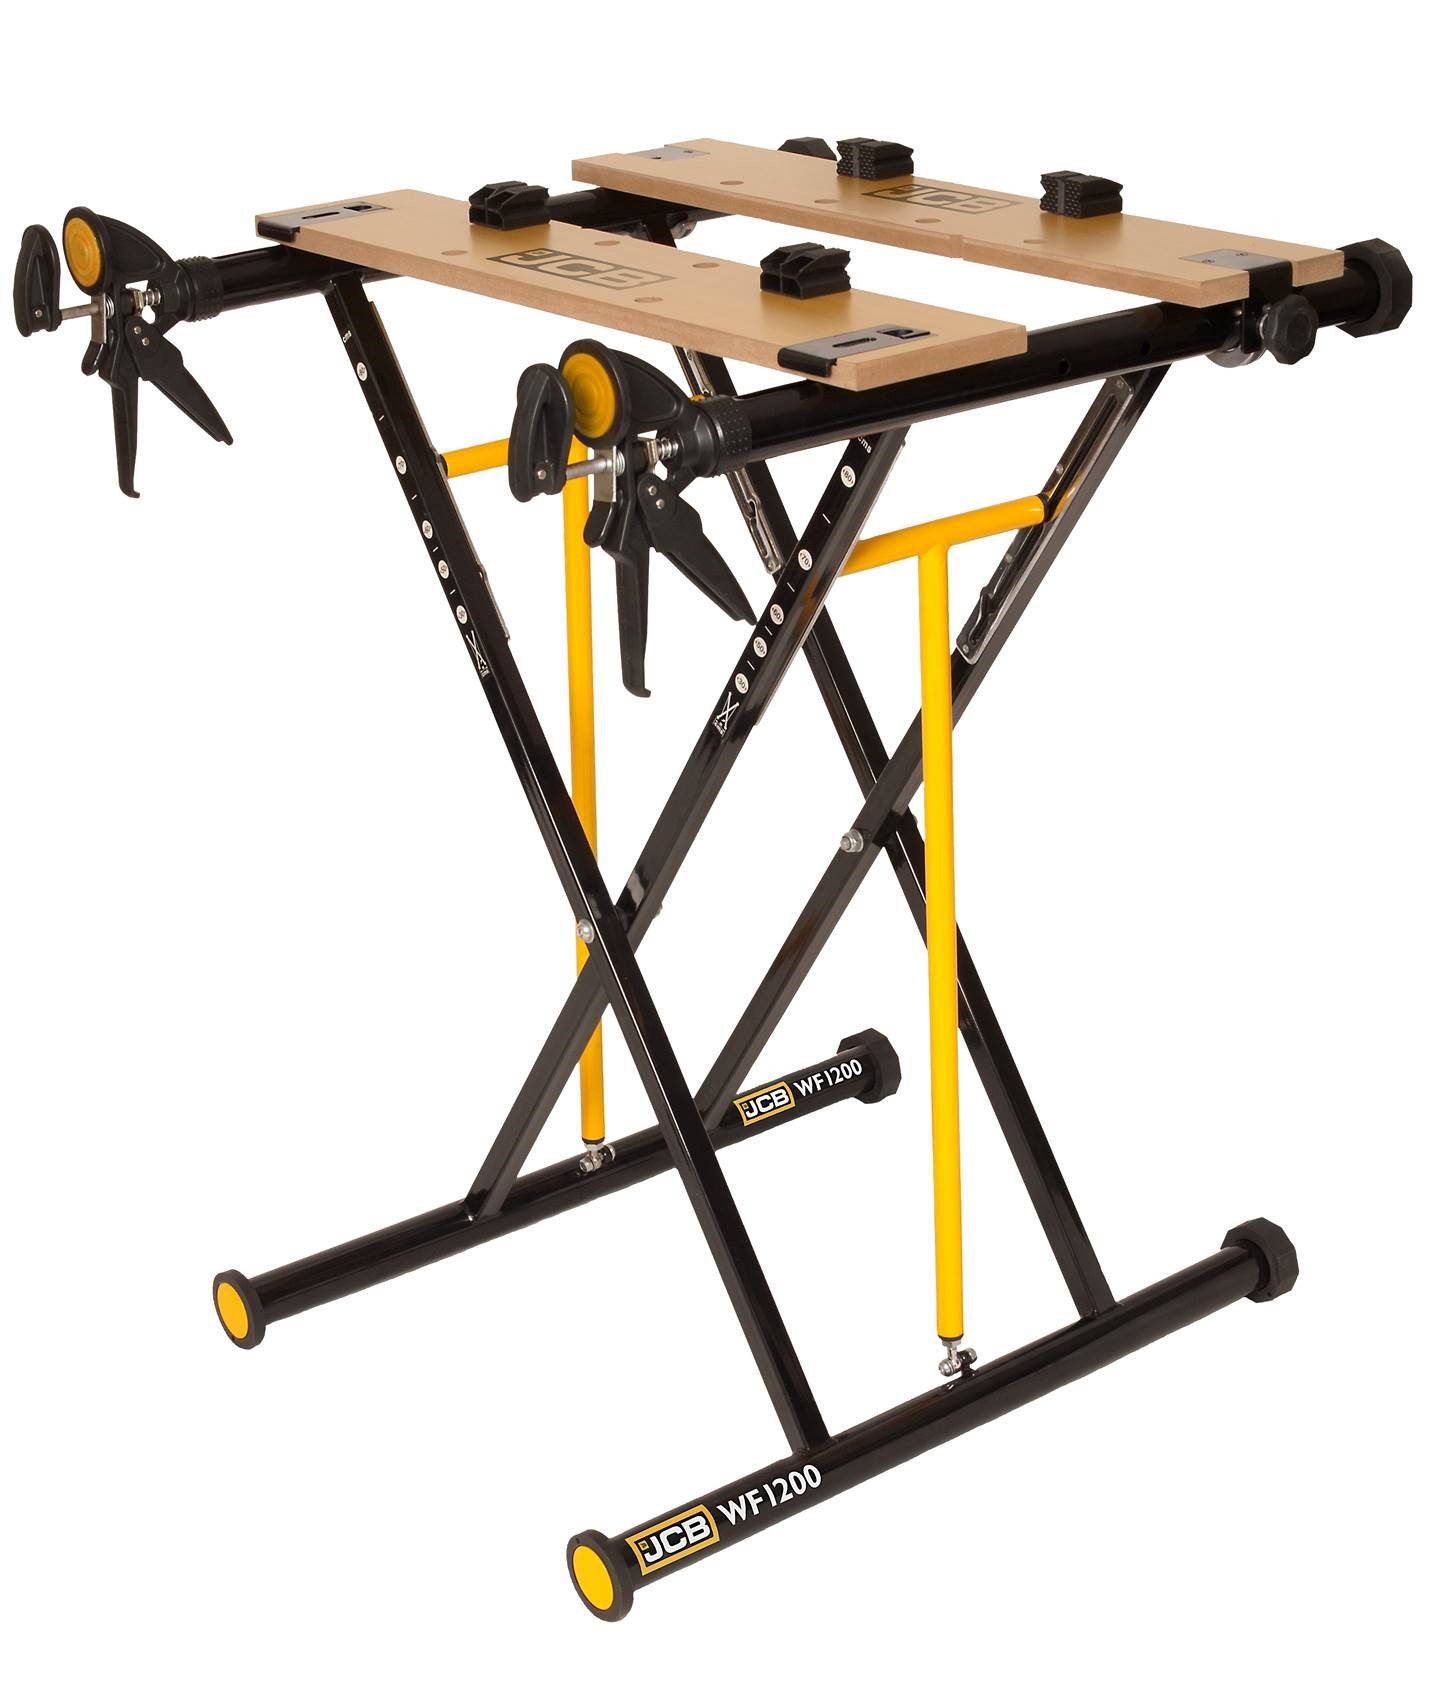 Jcb Workmate Foldable Speed Clamp Workframe W 190mm